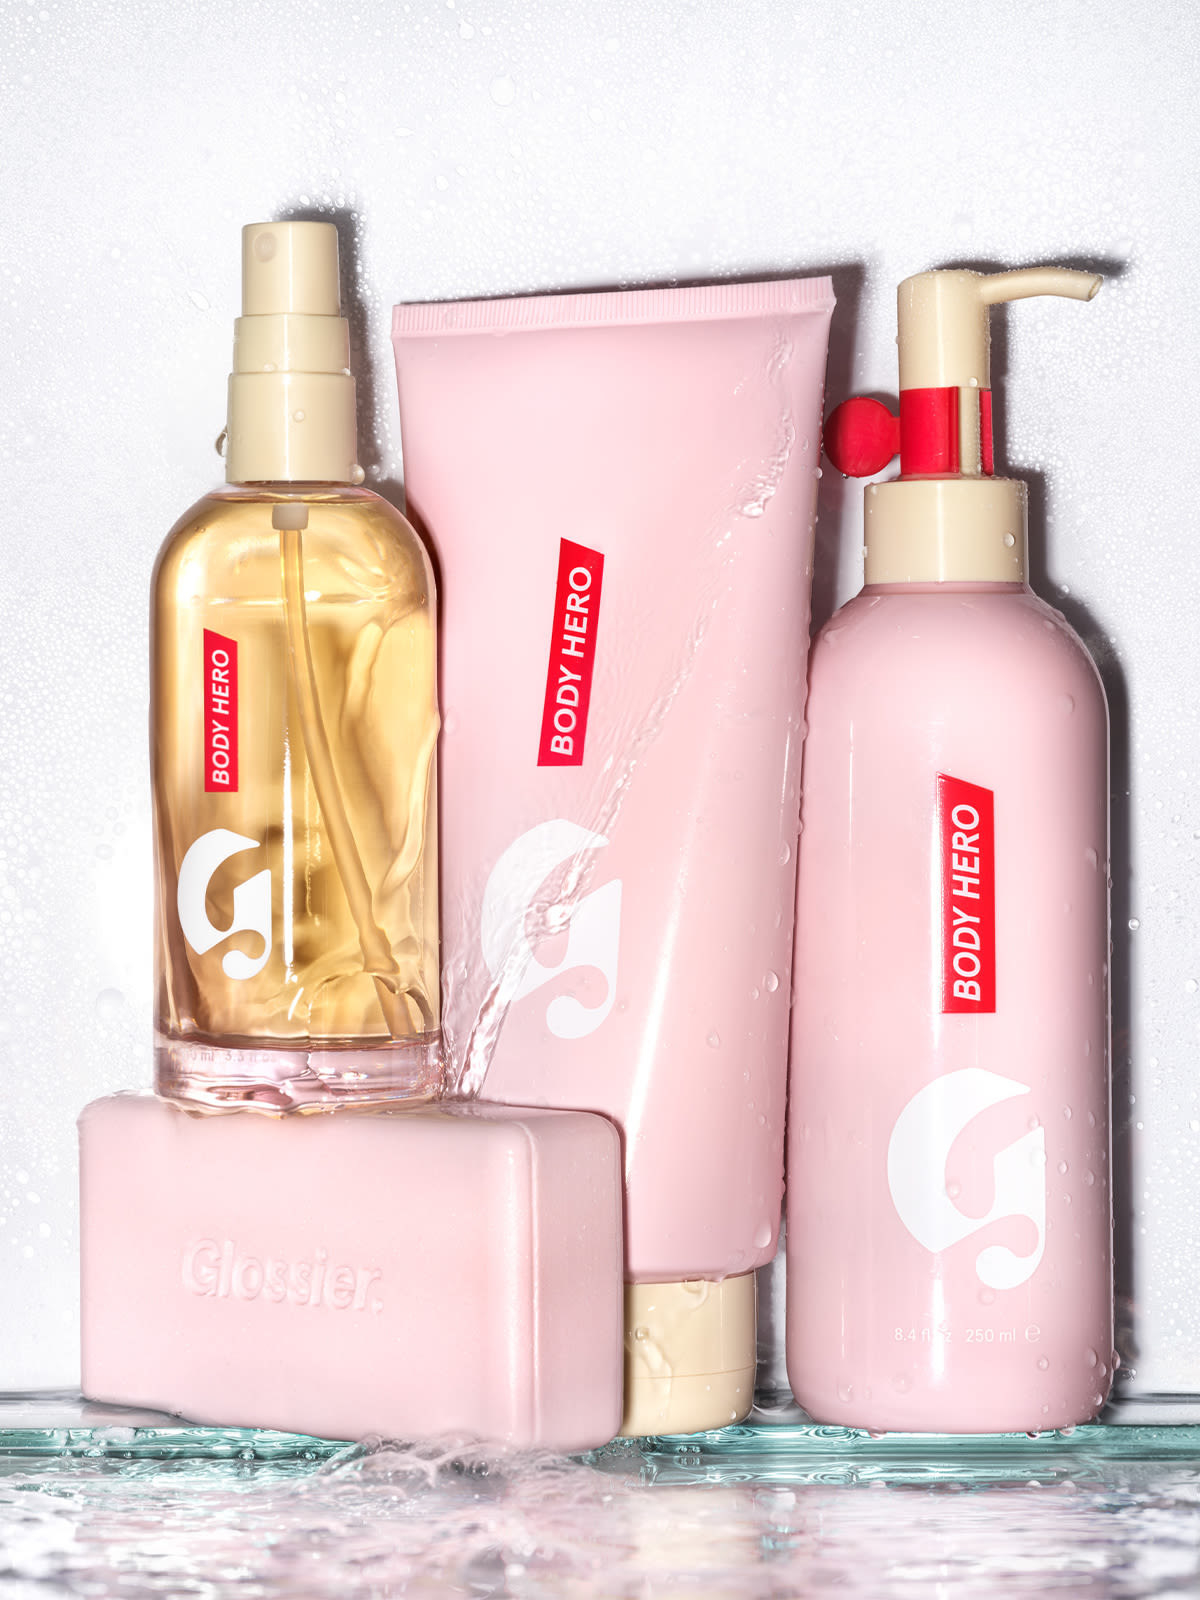 All four of the body products that are included in the set in their pink packaging